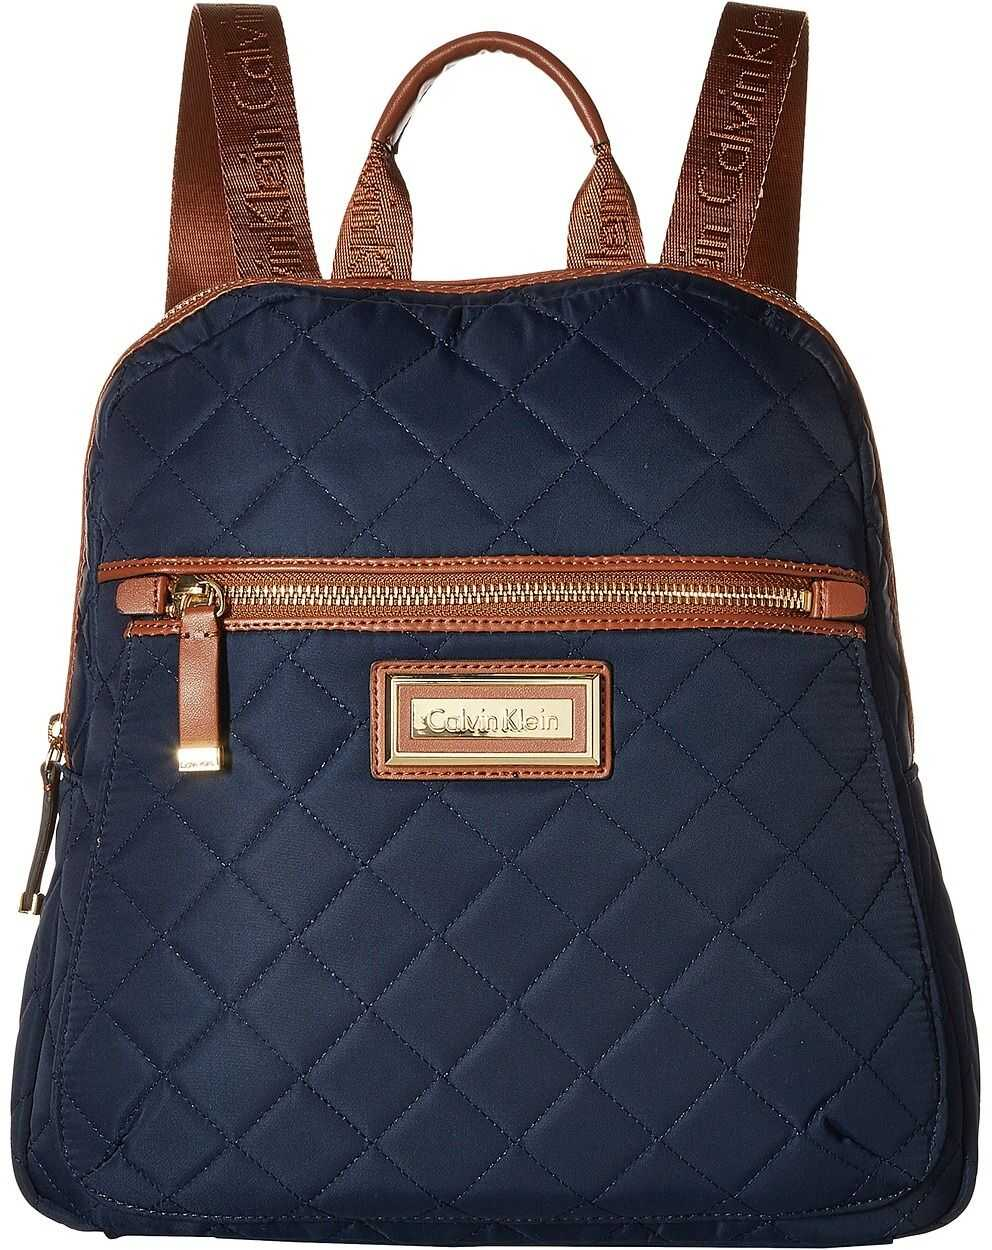 Calvin Klein Quilted Nylon Key Item Backpack Navy